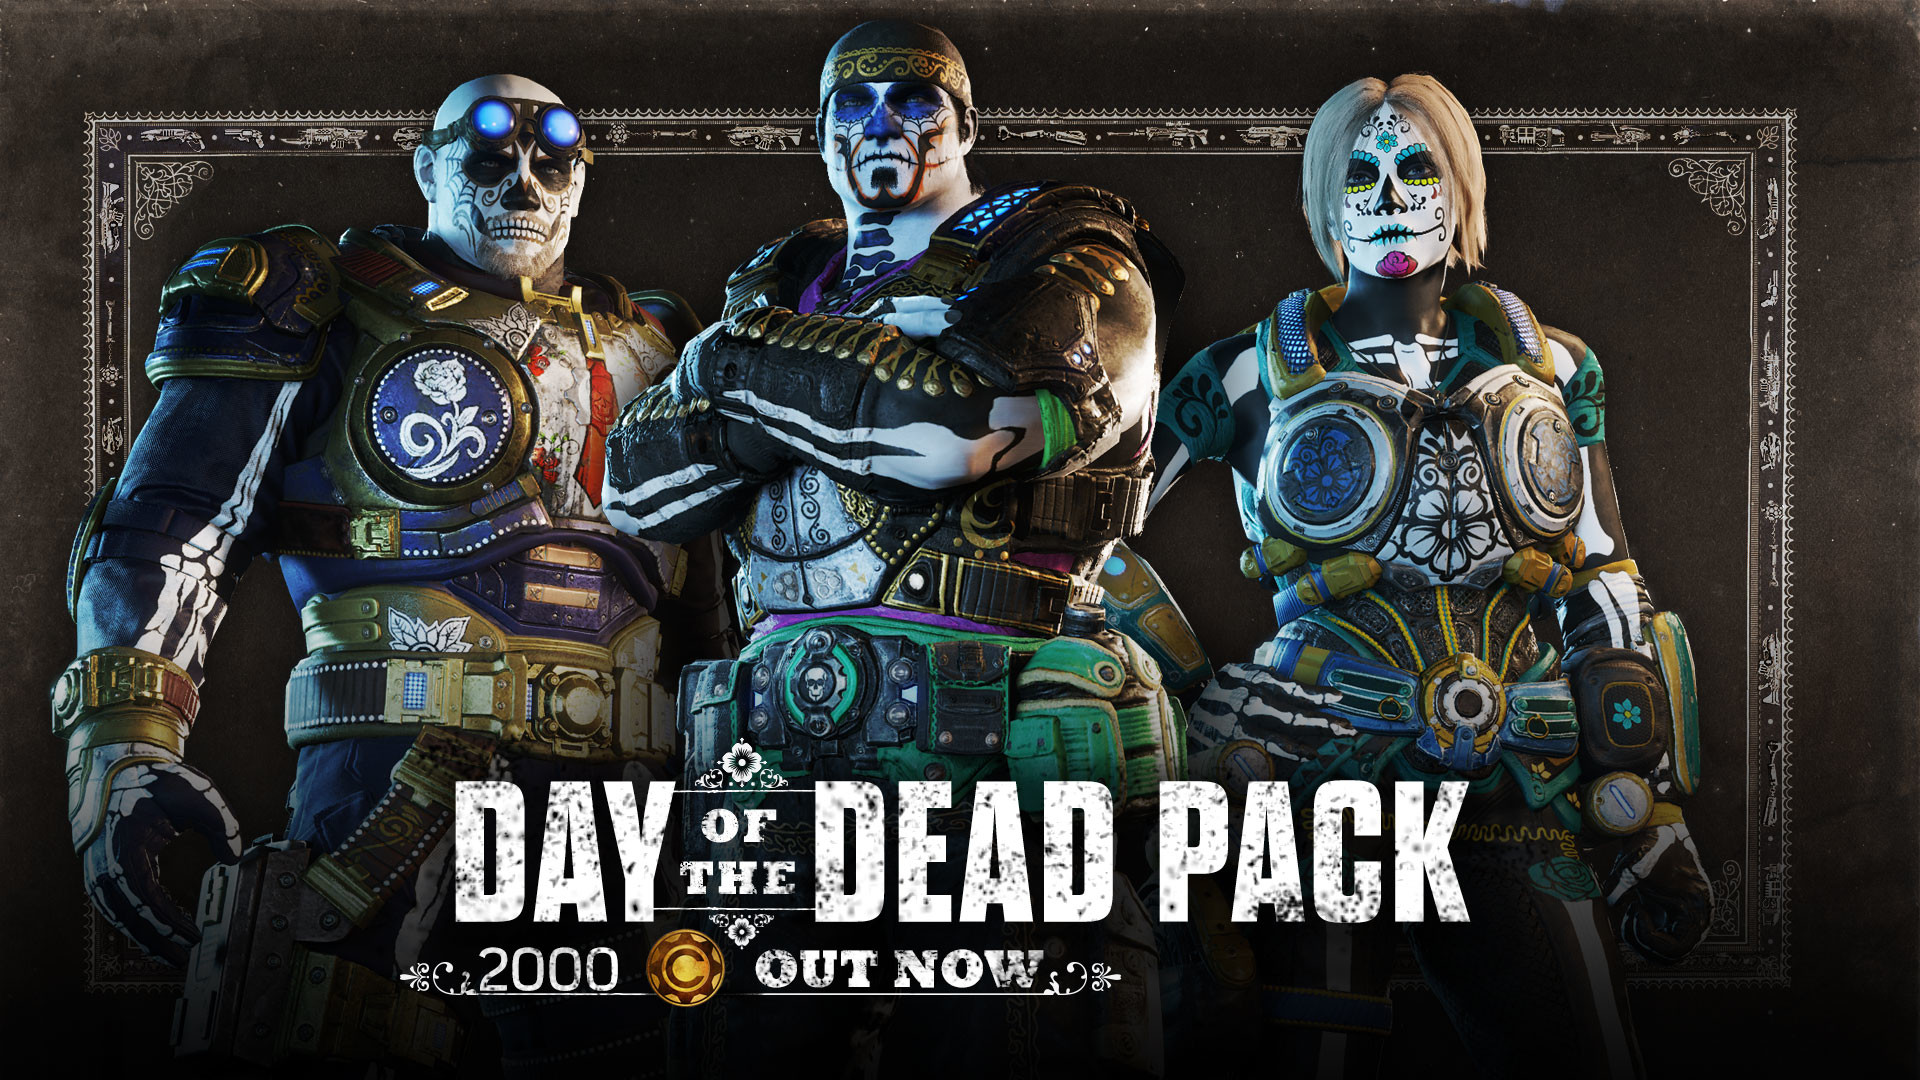 Day of the Dead pack